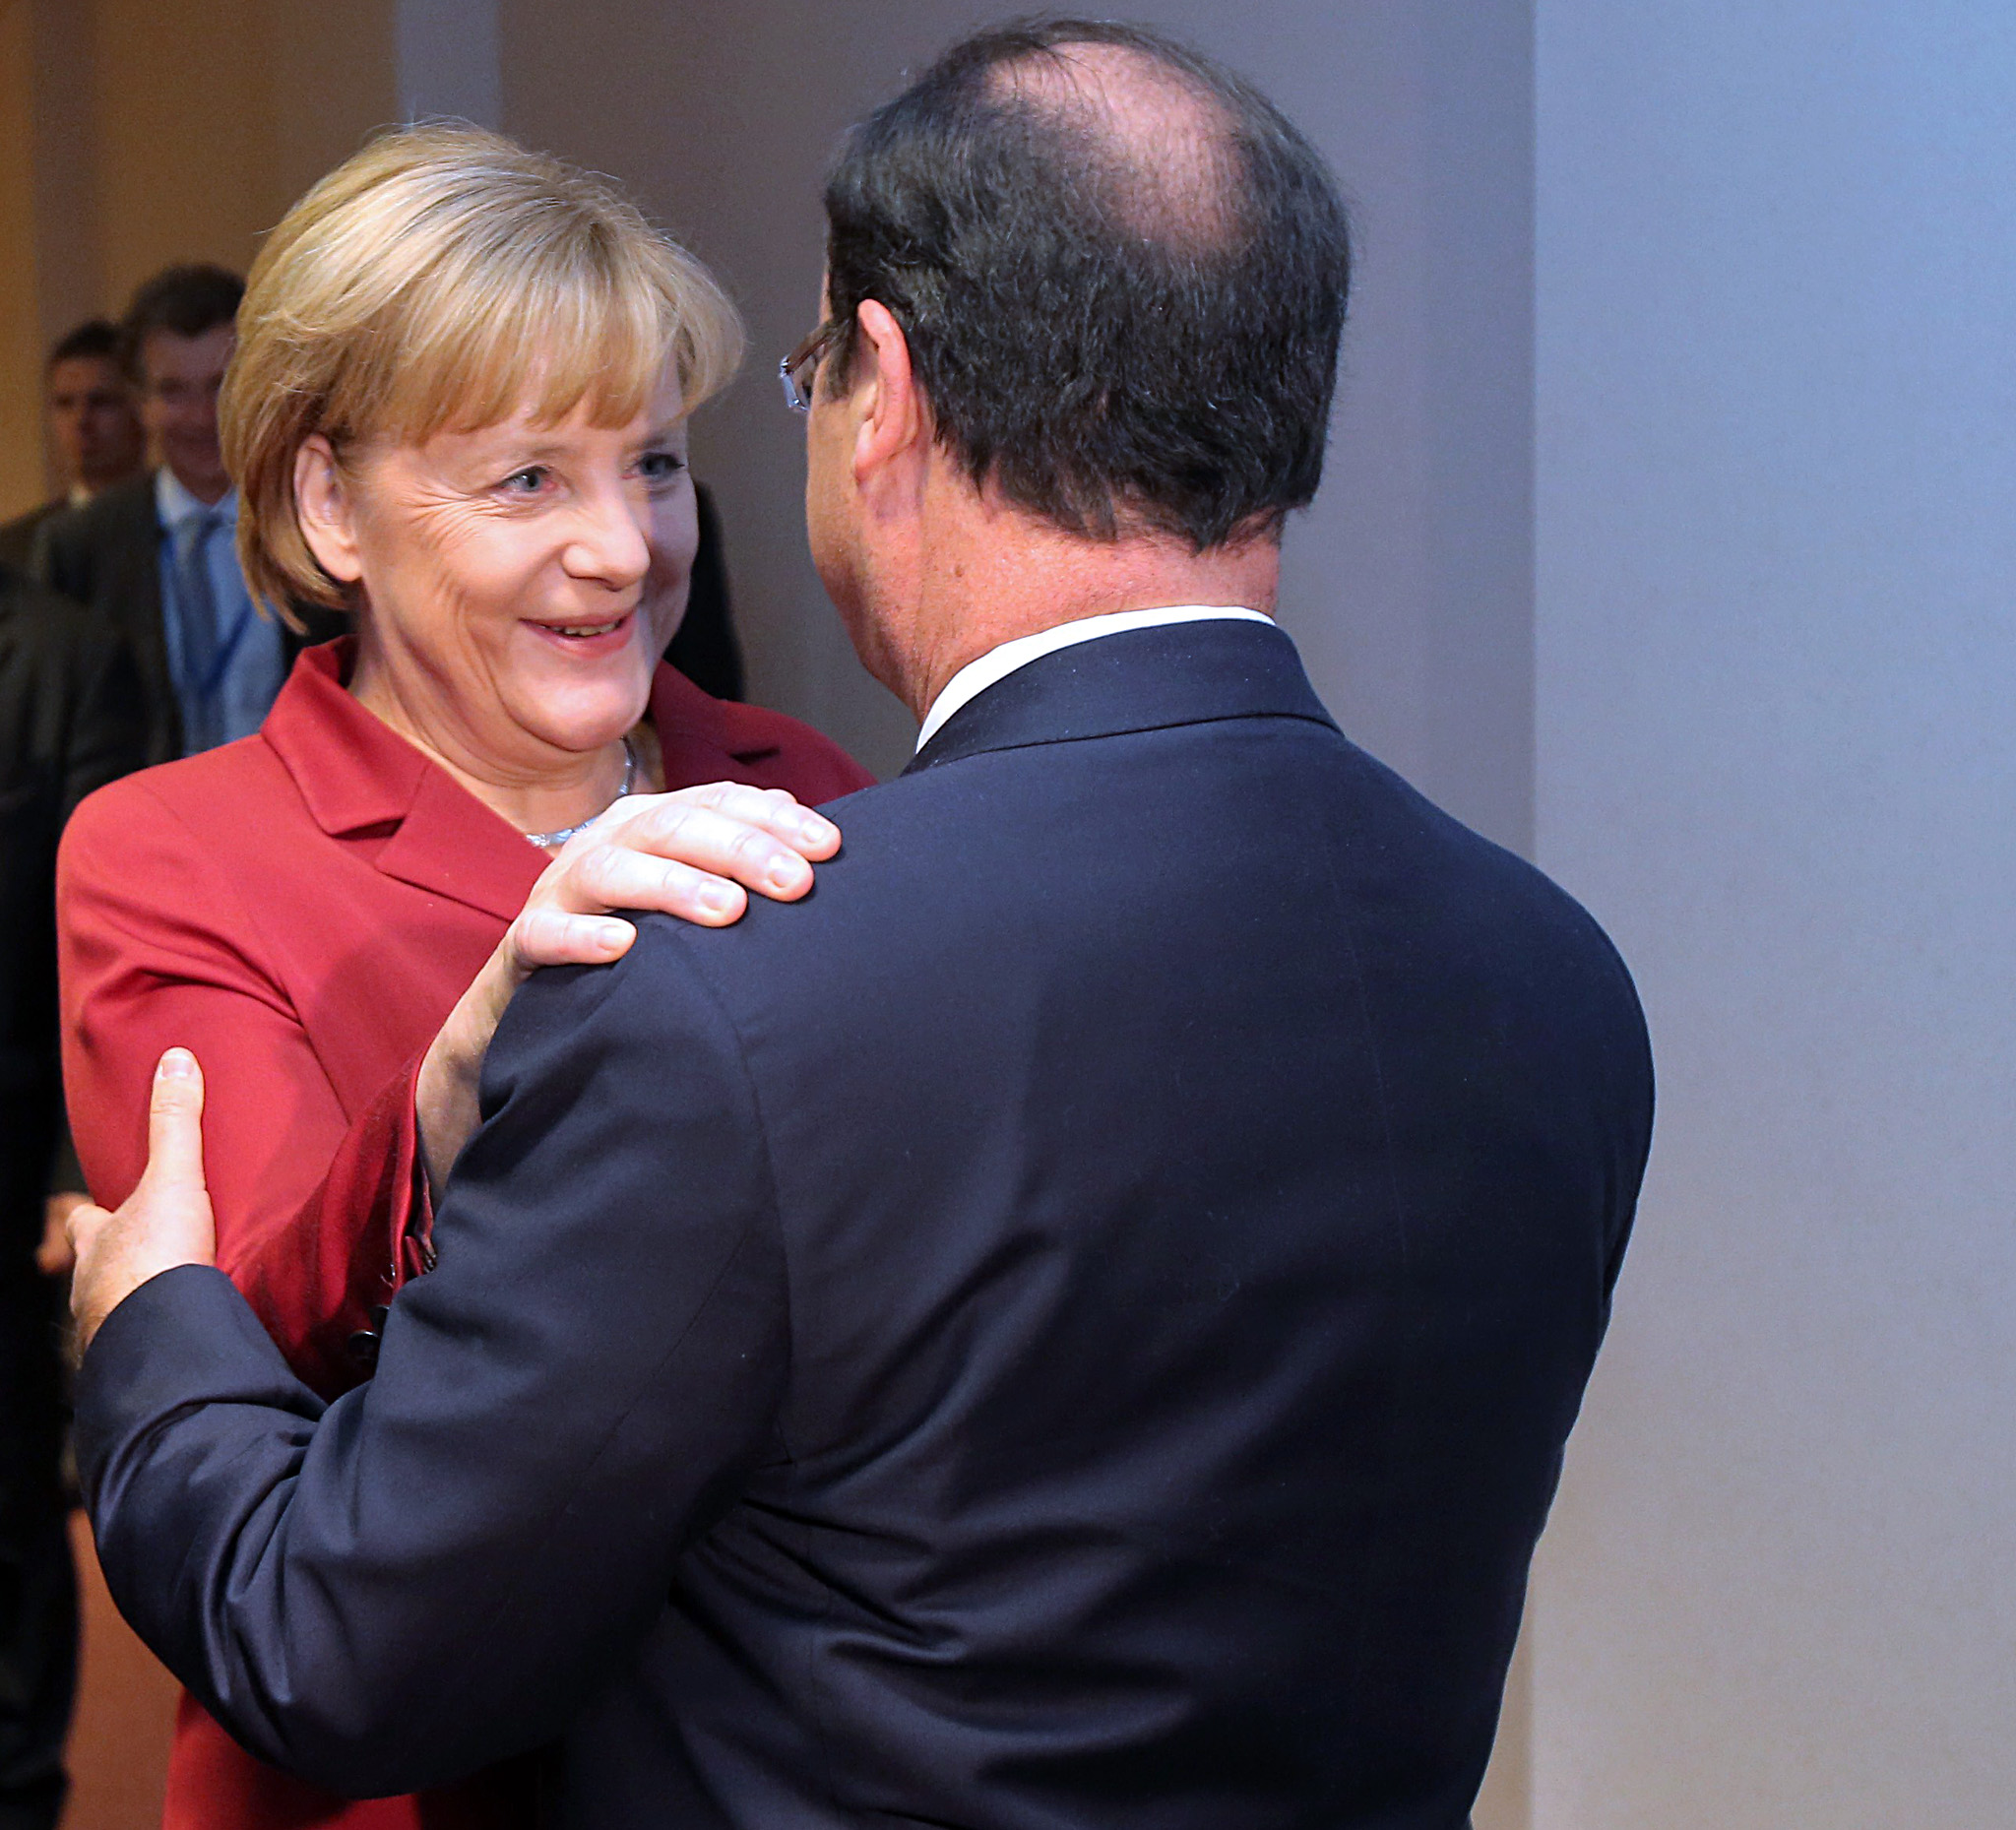 German Chancellor Angela Merkel (2ndR) i...German Chancellor Angela Merkel (2ndR) is greeted by French President Francois Hollande prior to their bilateral meeting on the sidelines of a EU summit on October 24, 2013. German Chancellor Angela Merkel, reportedly the target of US snooping on her mobile phone, said on October 24 that such conduct between friends was unacceptable.  AFP PHOTO / POOL / Michel EulerMICHEL EULER/AFP/Getty Images